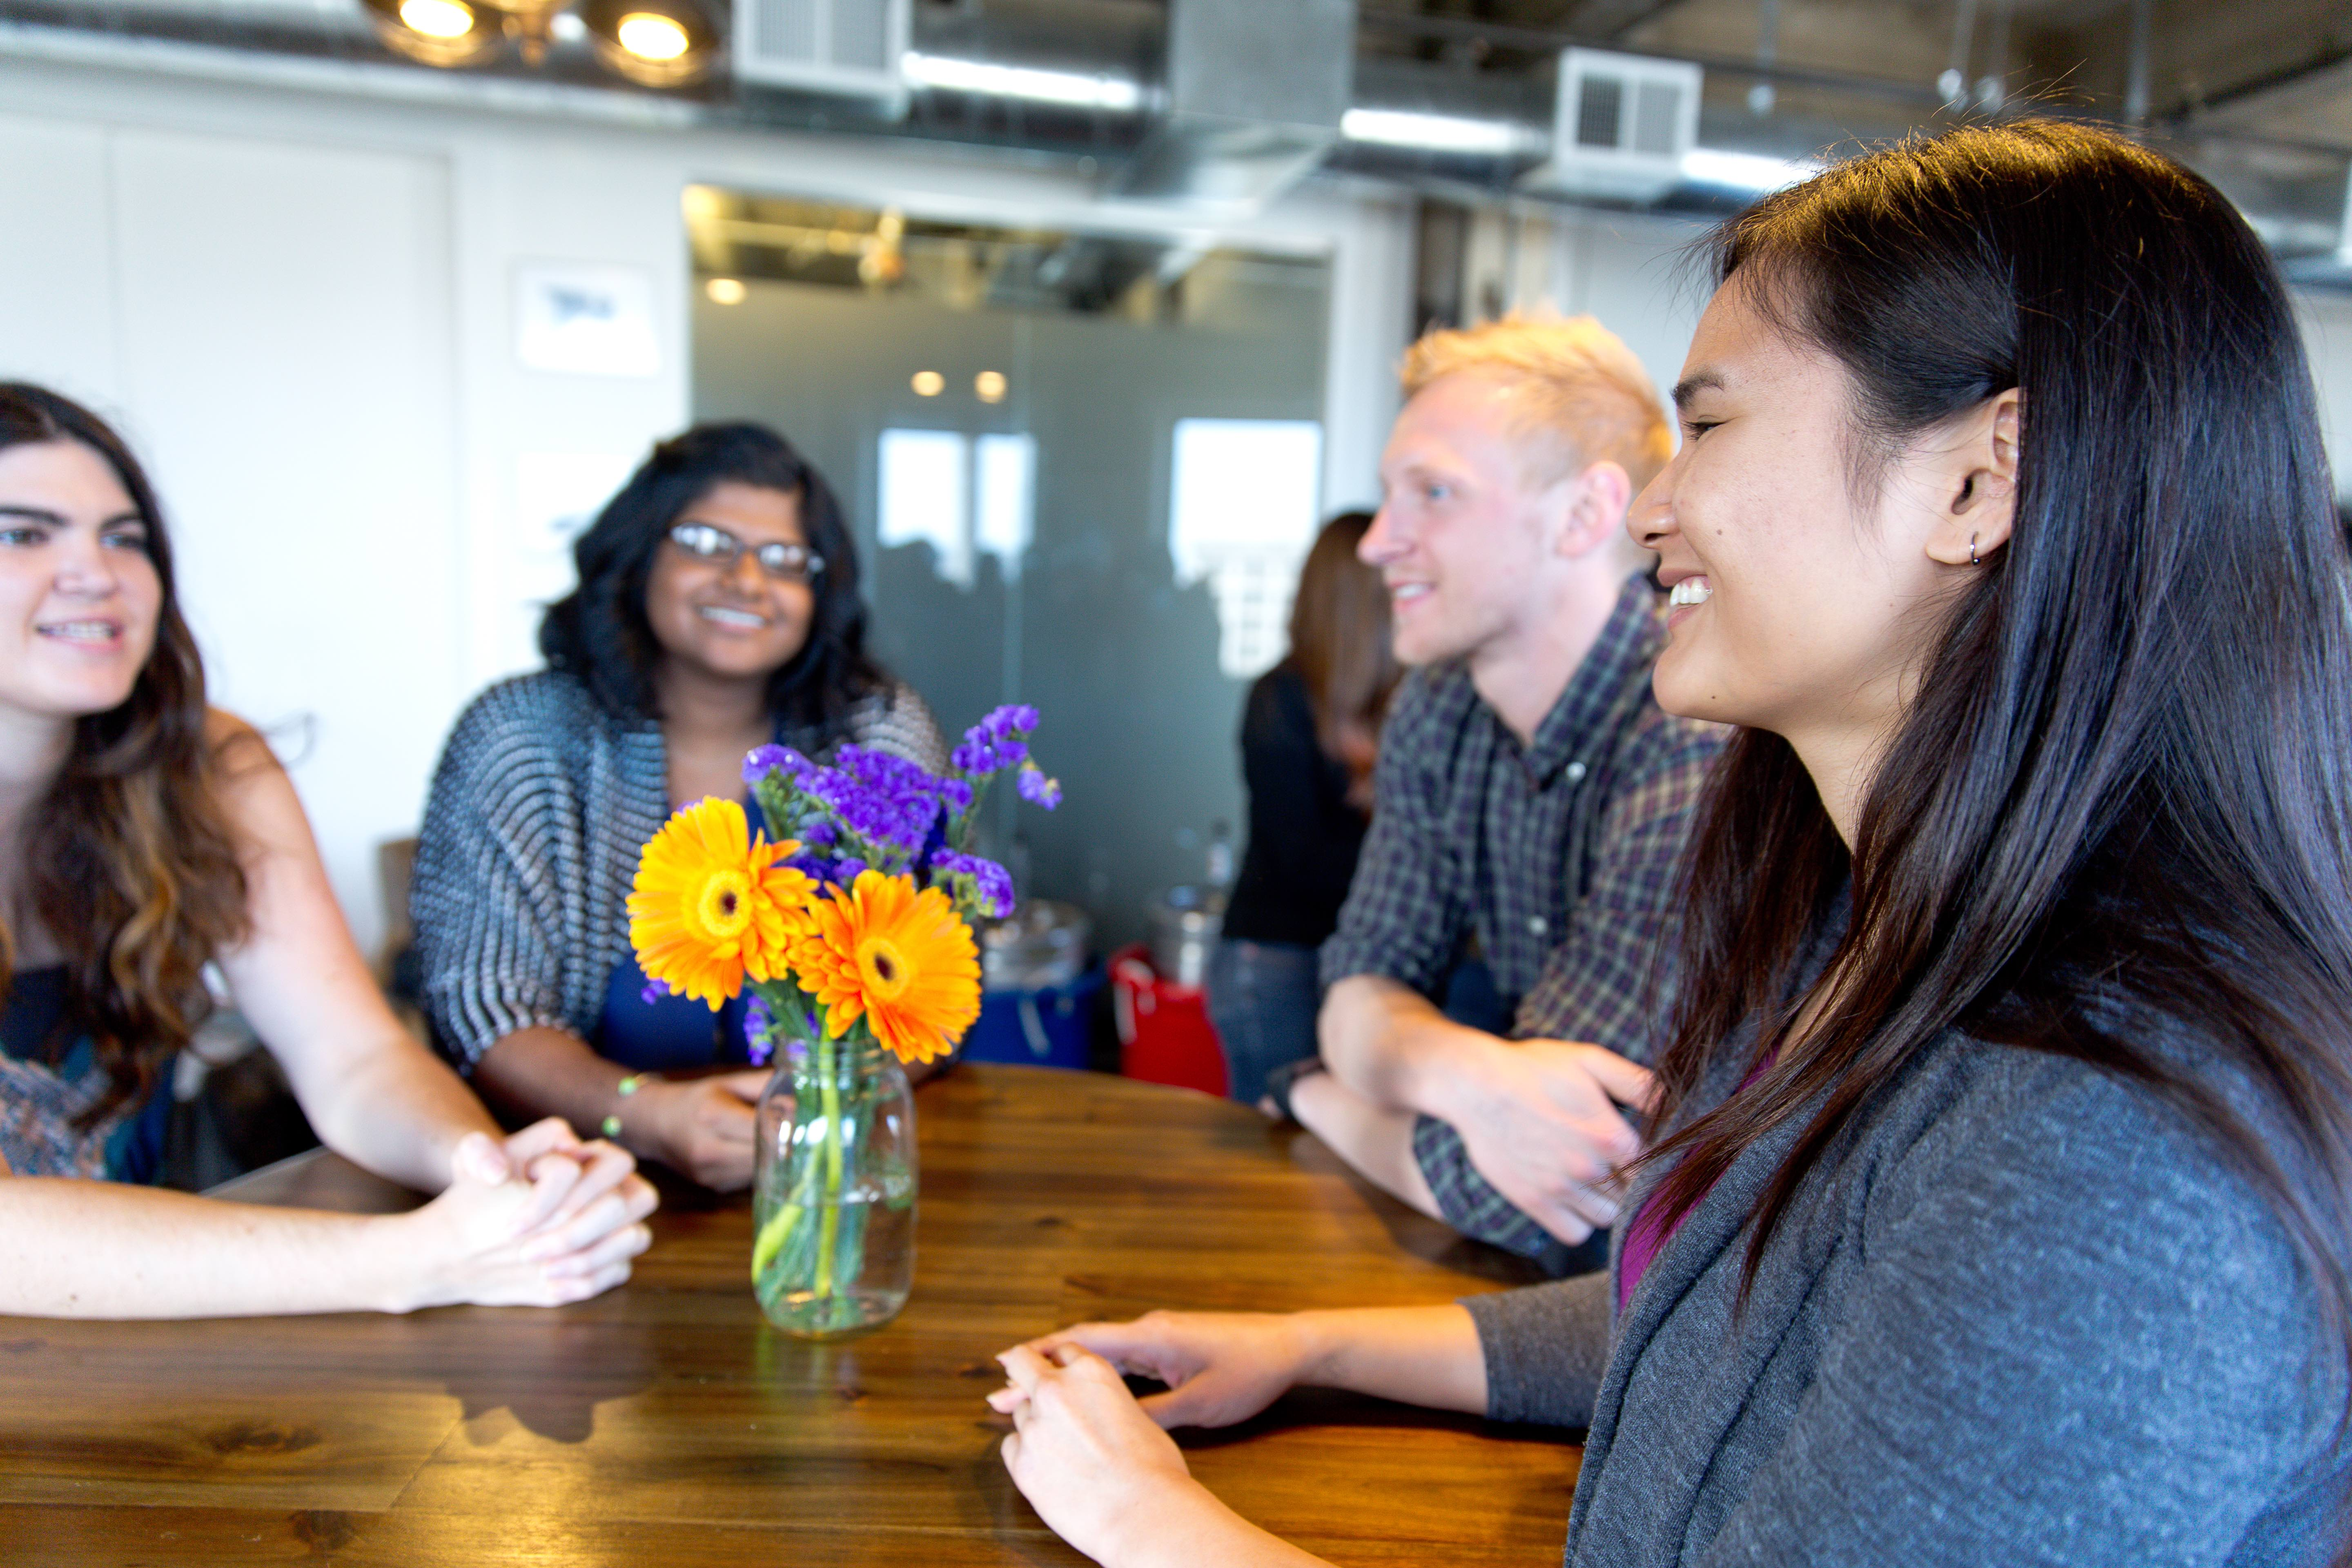 optimizely, hack reactor, women in tech, women in stem, scholarship